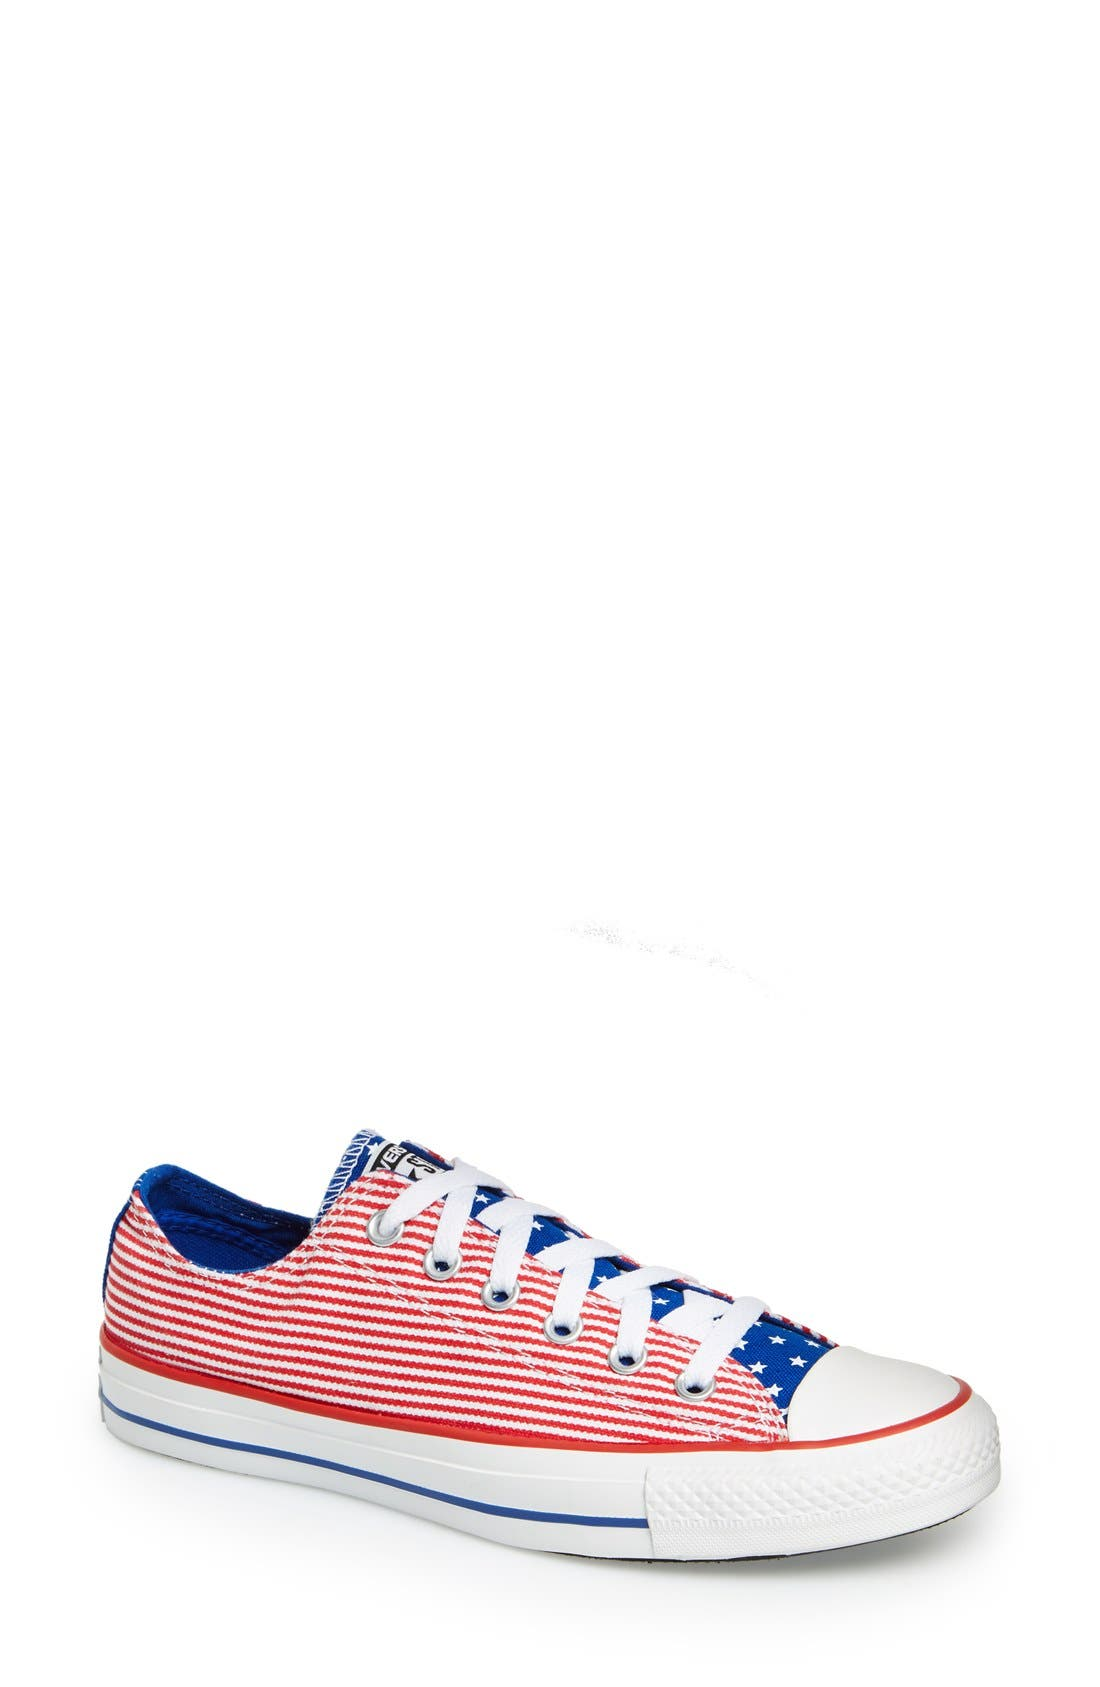 Main Image - Converse Chuck Taylor® All Star® 'Ox - Stars and Bars' Low Top Sneaker (Women)